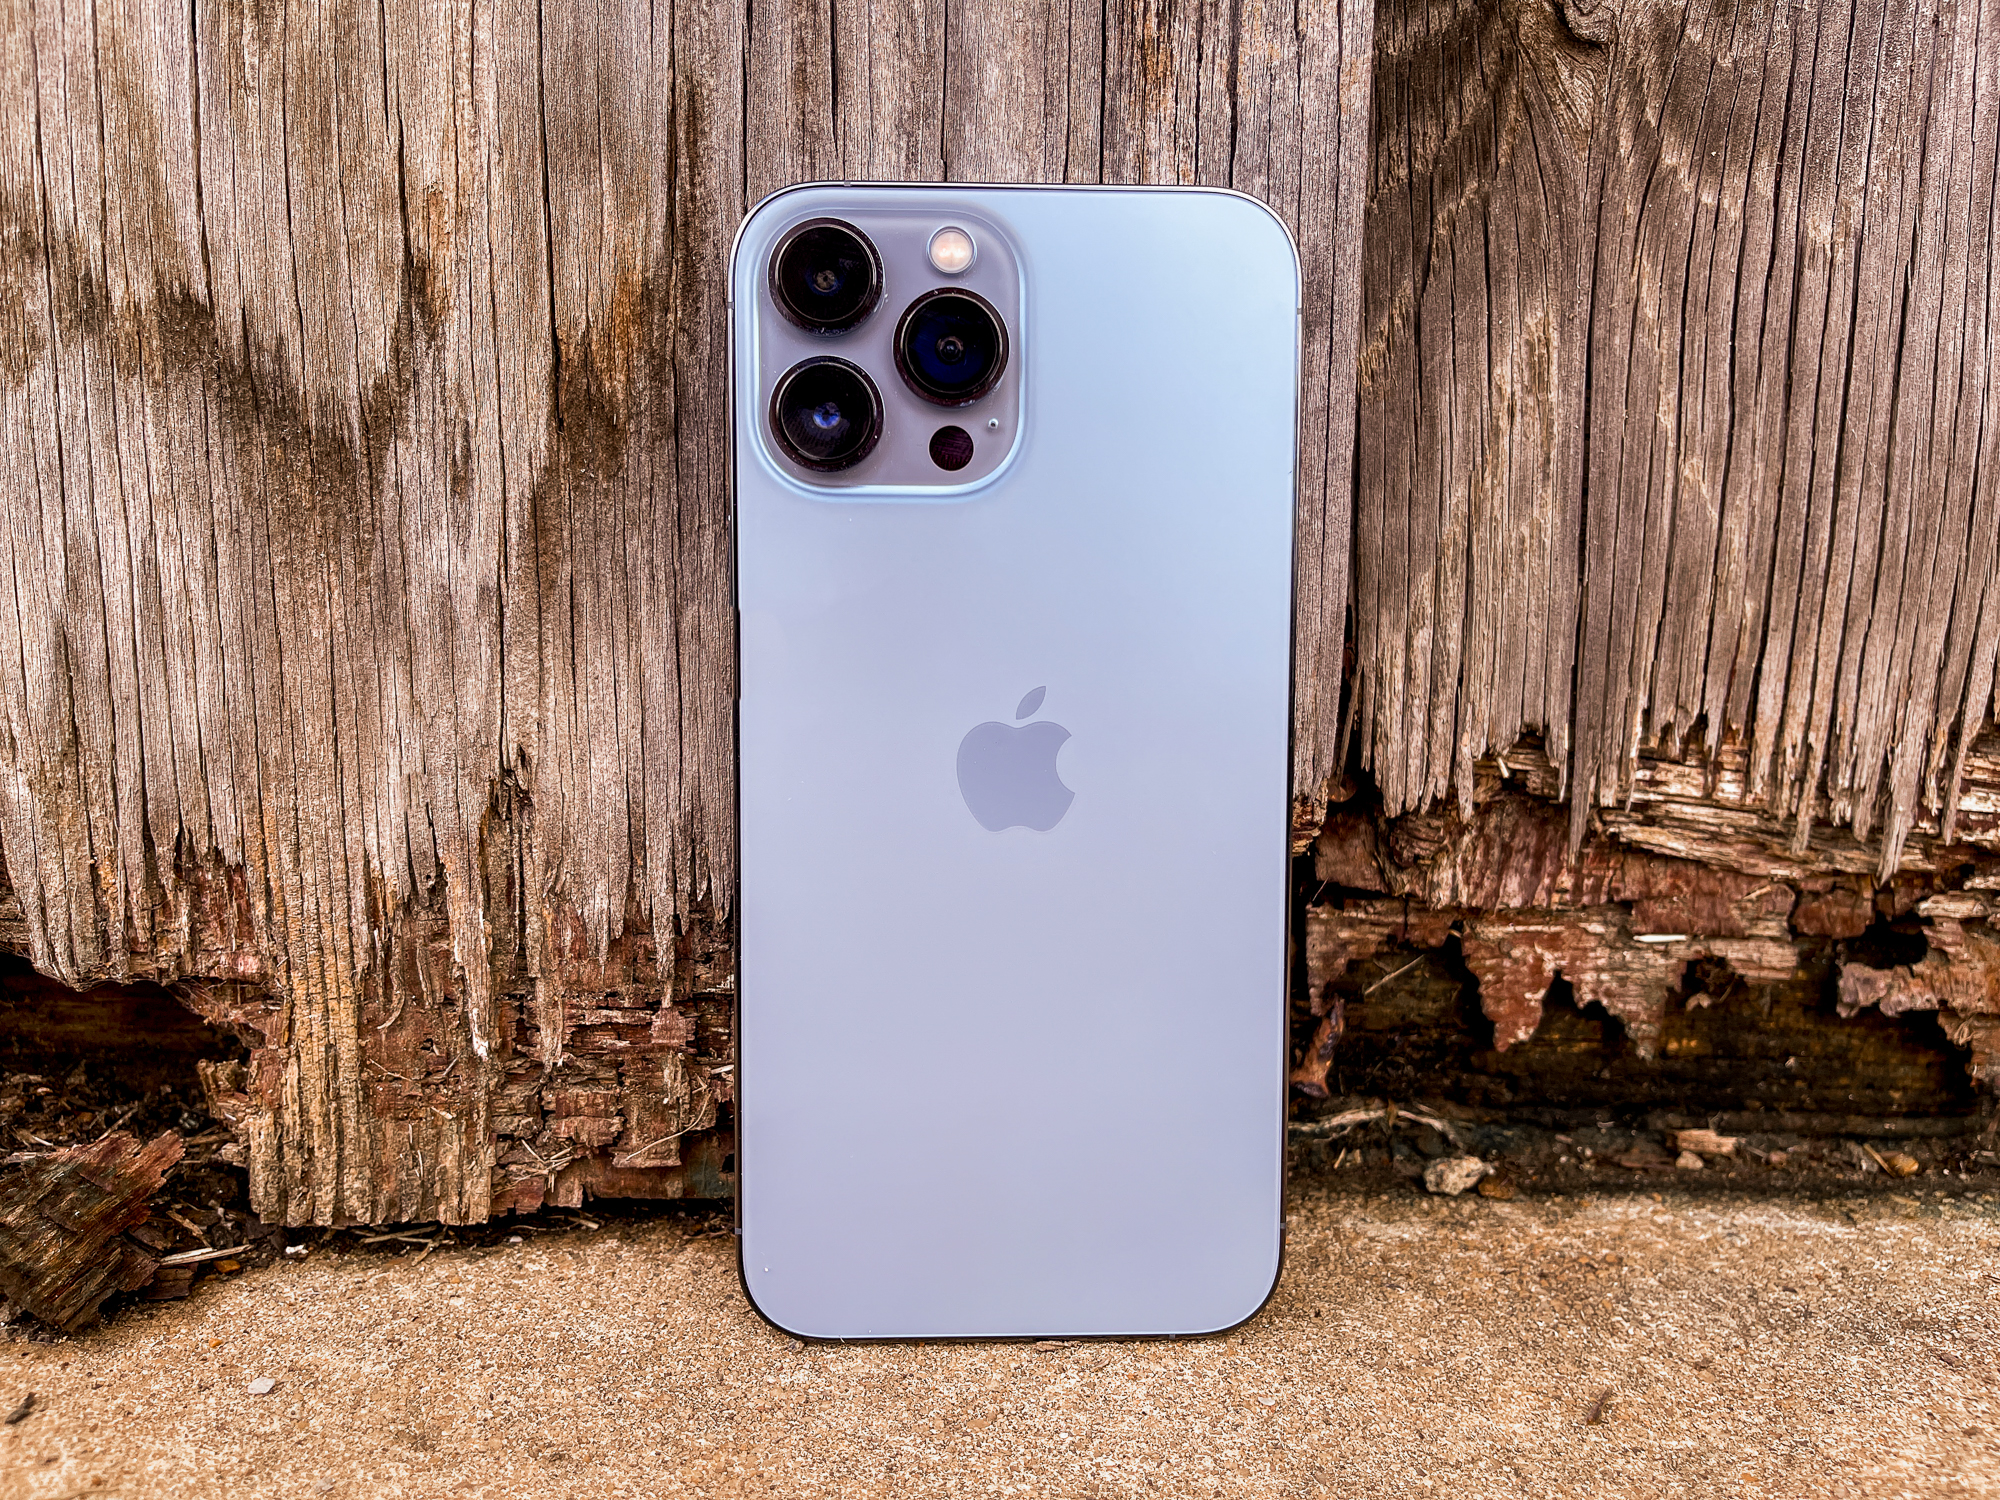 iphone-13-pro-max-cnet-2021-review-30